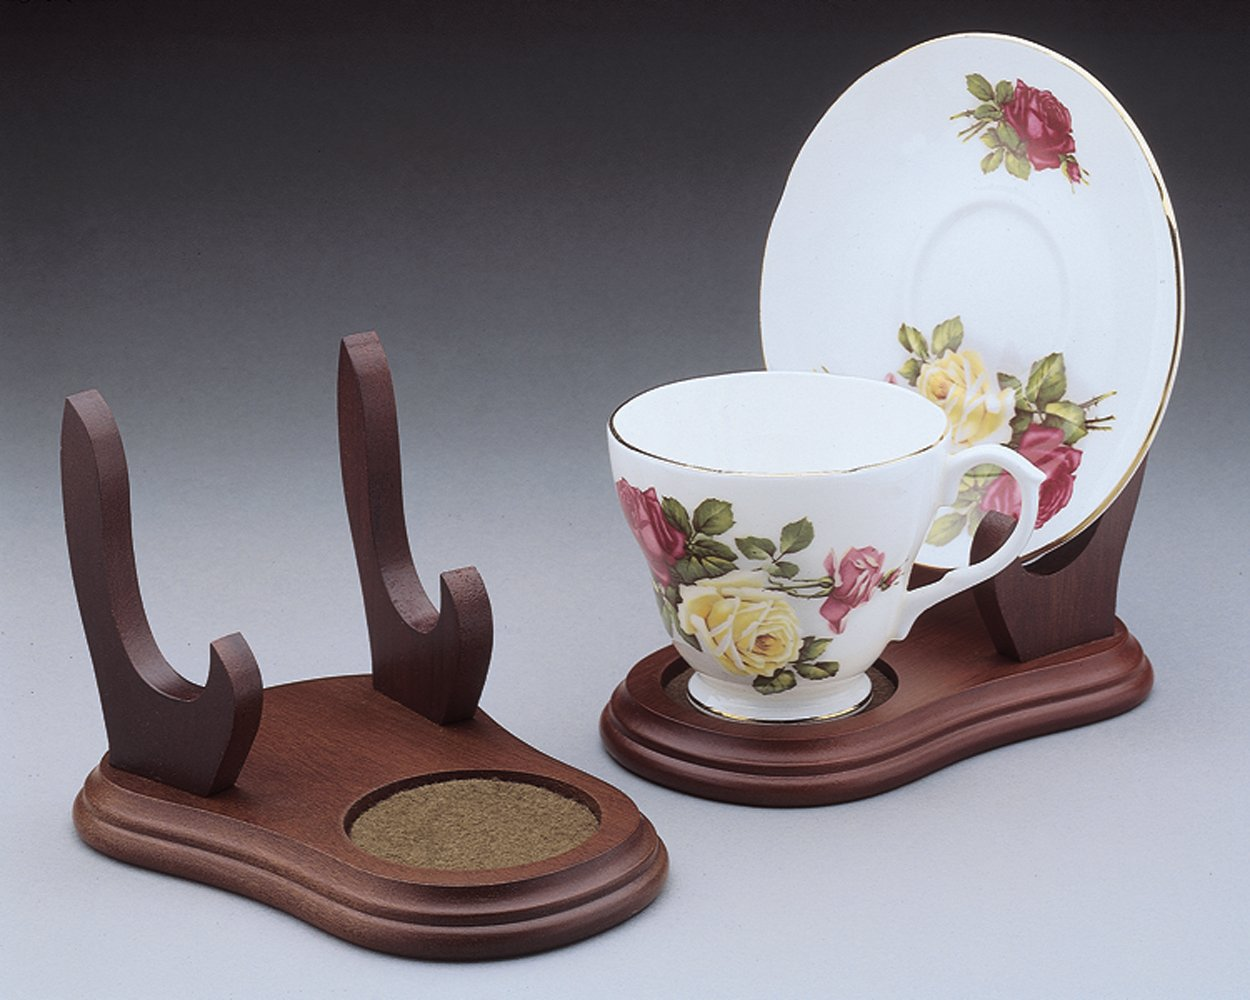 Cheap Tea Cup And Saucer Display Stand Find Tea Cup And Saucer Display Stand Deals On Line At Alibaba Com